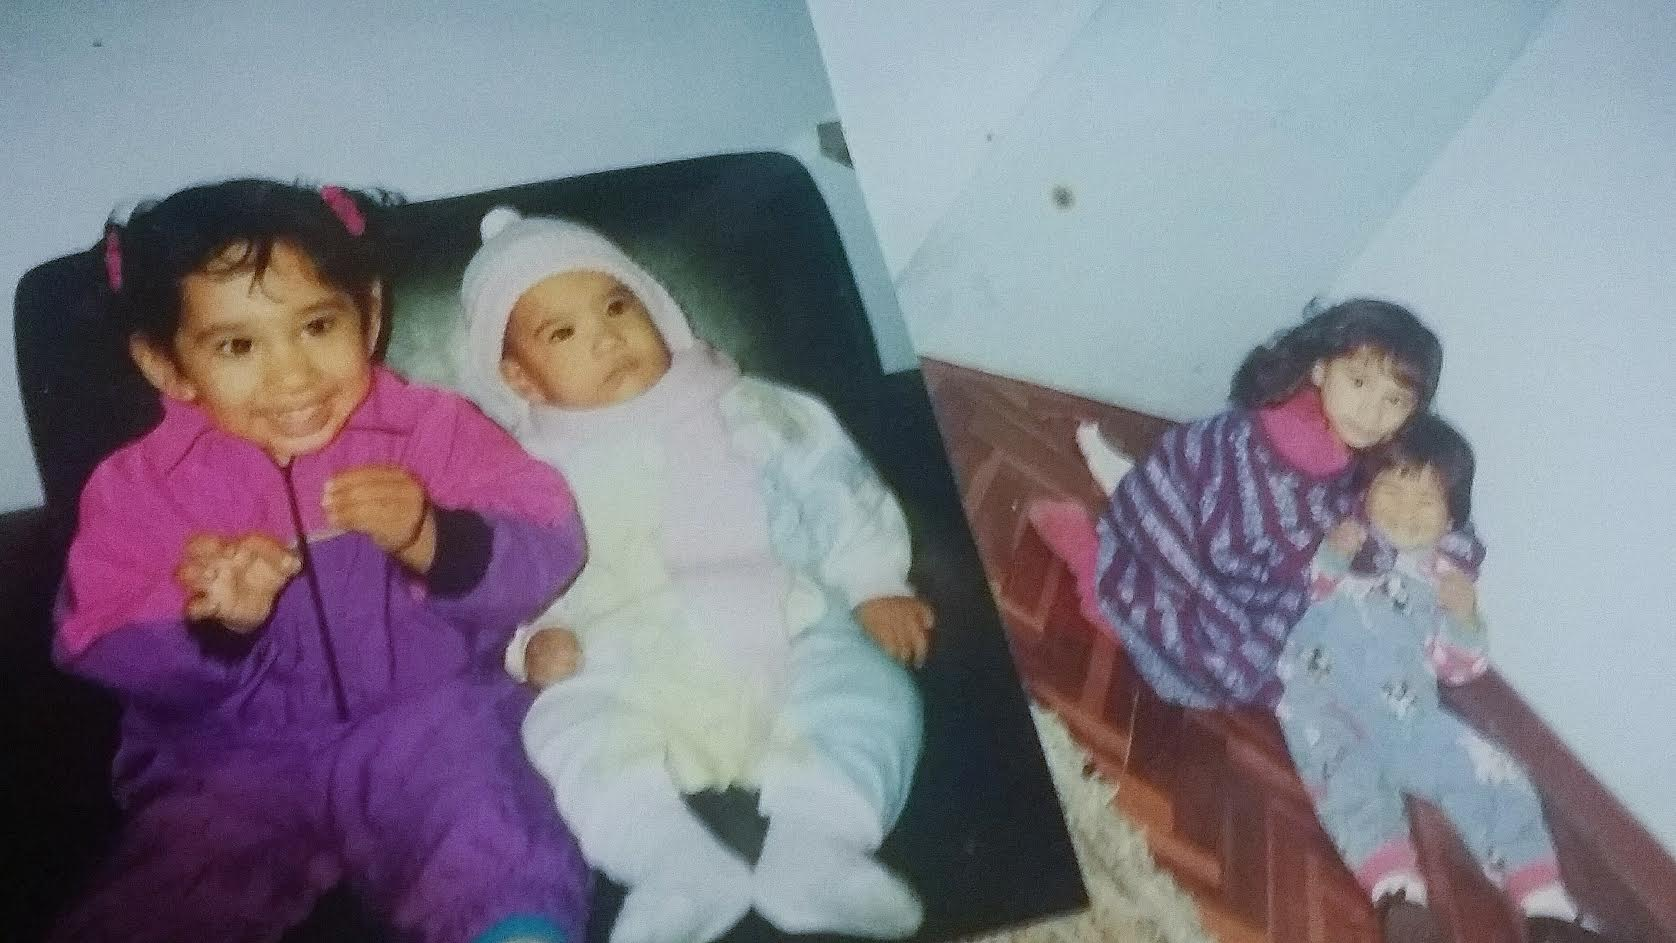 Two photos side by side. On the left, sisters Emily and Annie are very young. Emily is in a white onesie and Annie is in a pink and purple jumpsuit. In the right-hand photo, both siblings are slightly older but still children, with Annie putting her arms around Emily to hug her from behind. Annie wears purple and pink, Emily is in blue denim overalls.